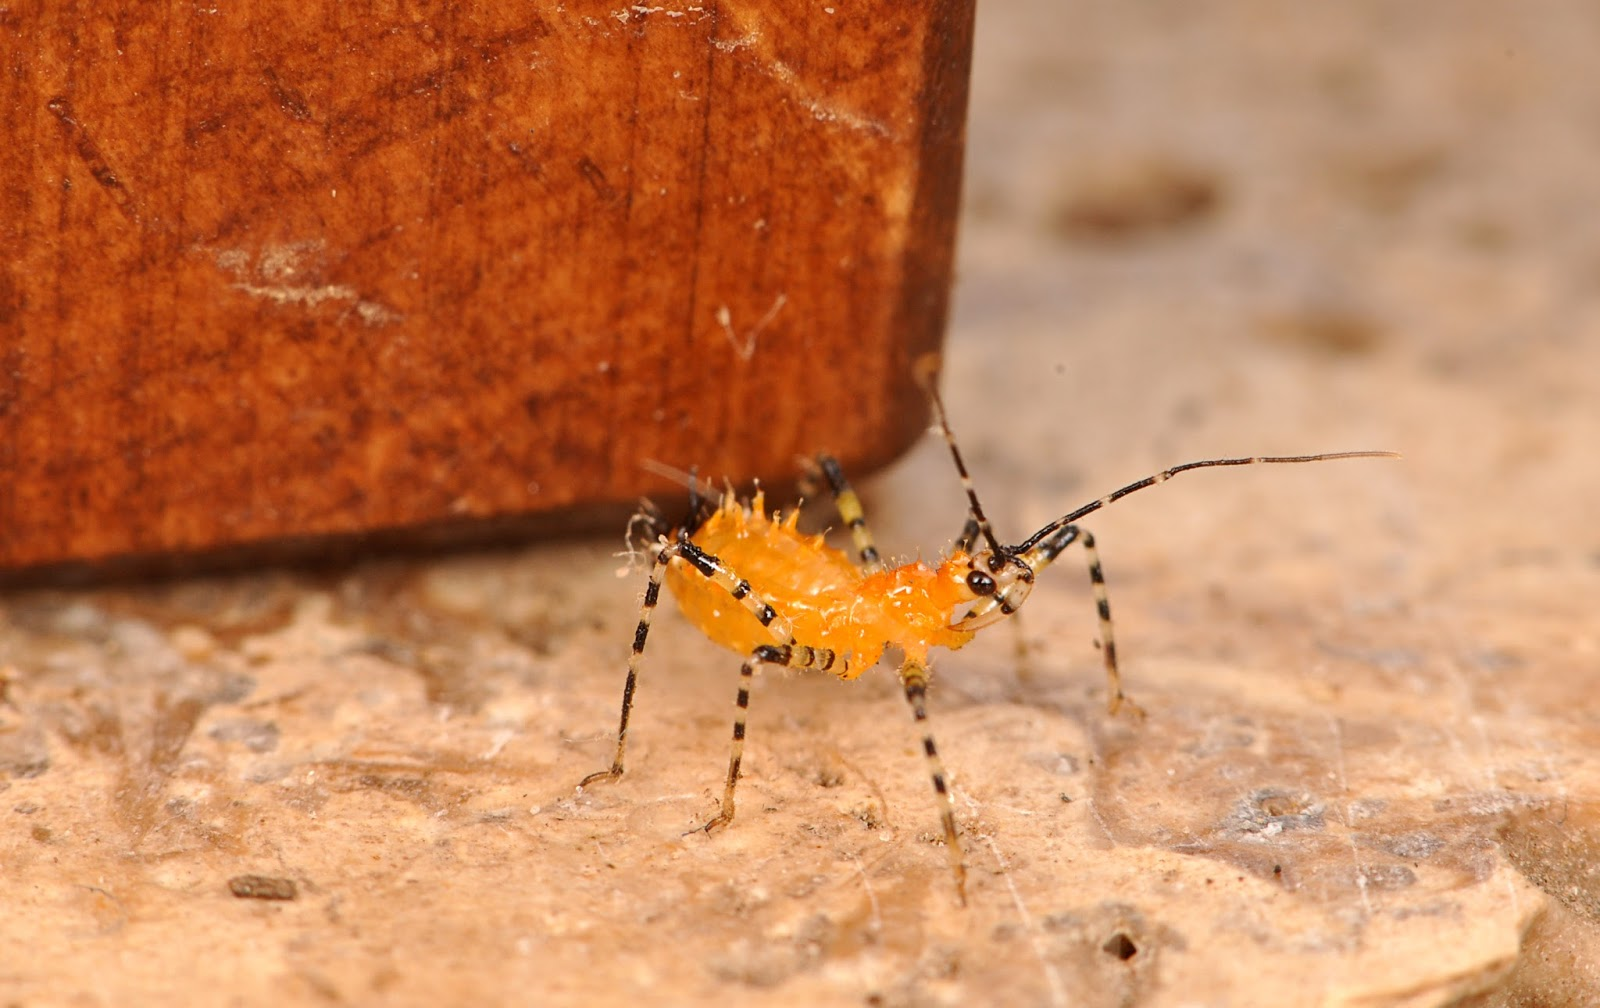 Members of the genus Pselliopus are small  common assassin bugs with  distinct rings around their appendages and along the body  This nymph   found crawling. NCSU PDIC  Kissing Bugs and Chagas Disease in NC